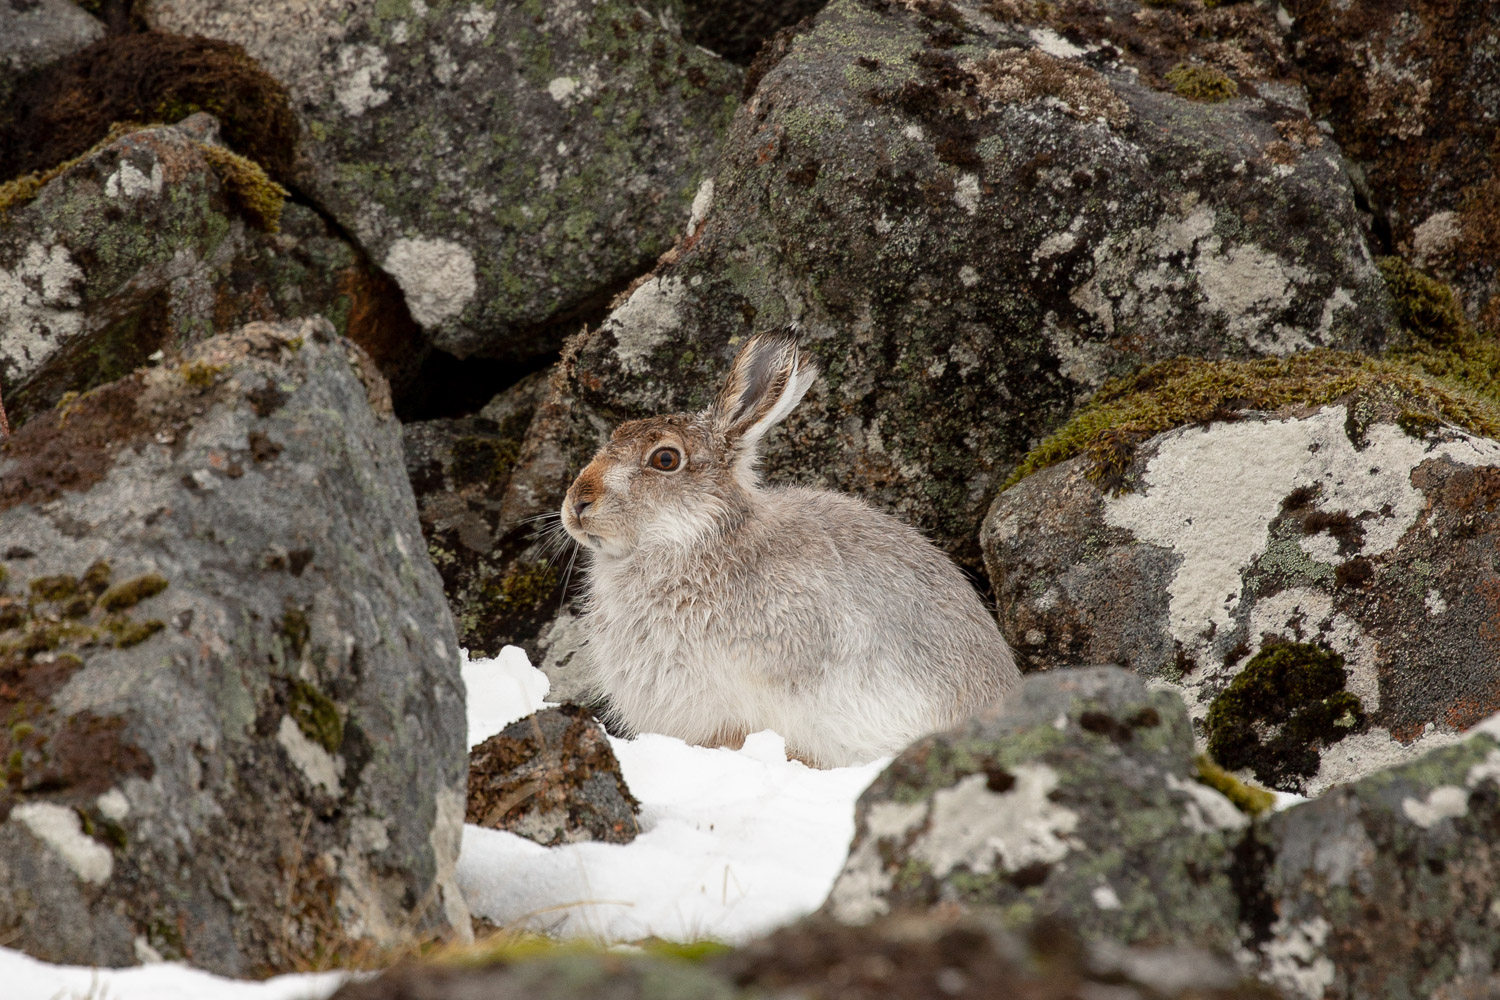 Mountain hare in the Scottish Cairngorm mountains